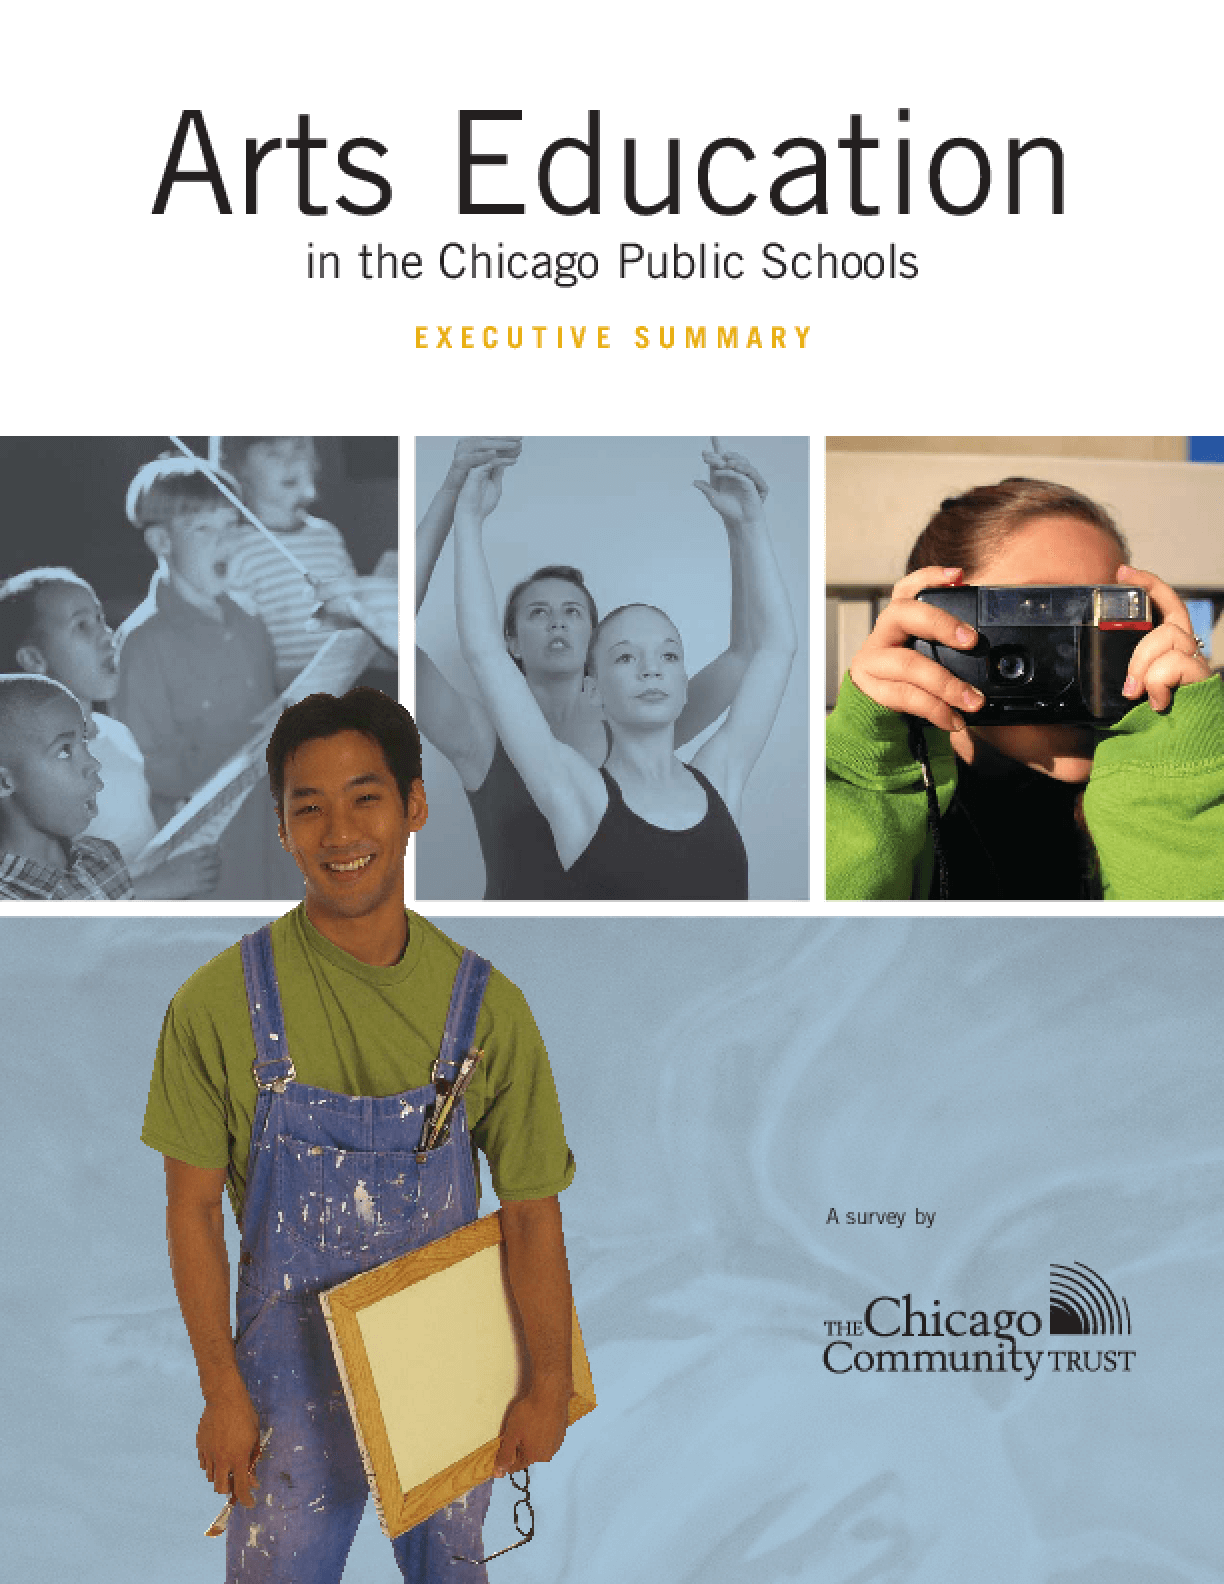 Arts Education in the Chicago Public Schools: Executive Summary